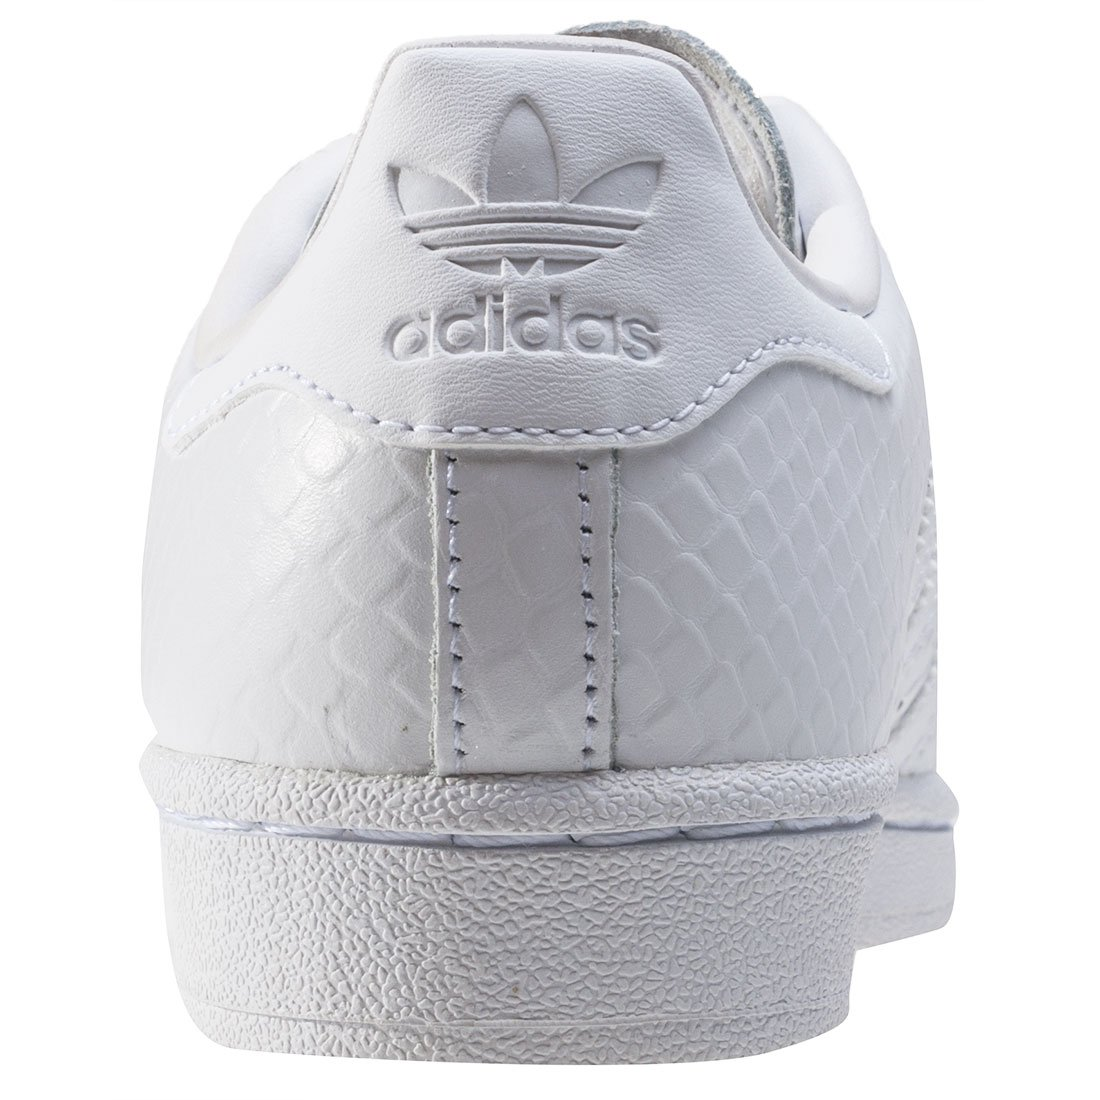 best sneakers 5121c bc98d Adidas - Basket Superstar W S76148 Blanc Amazon.fr Chaussure